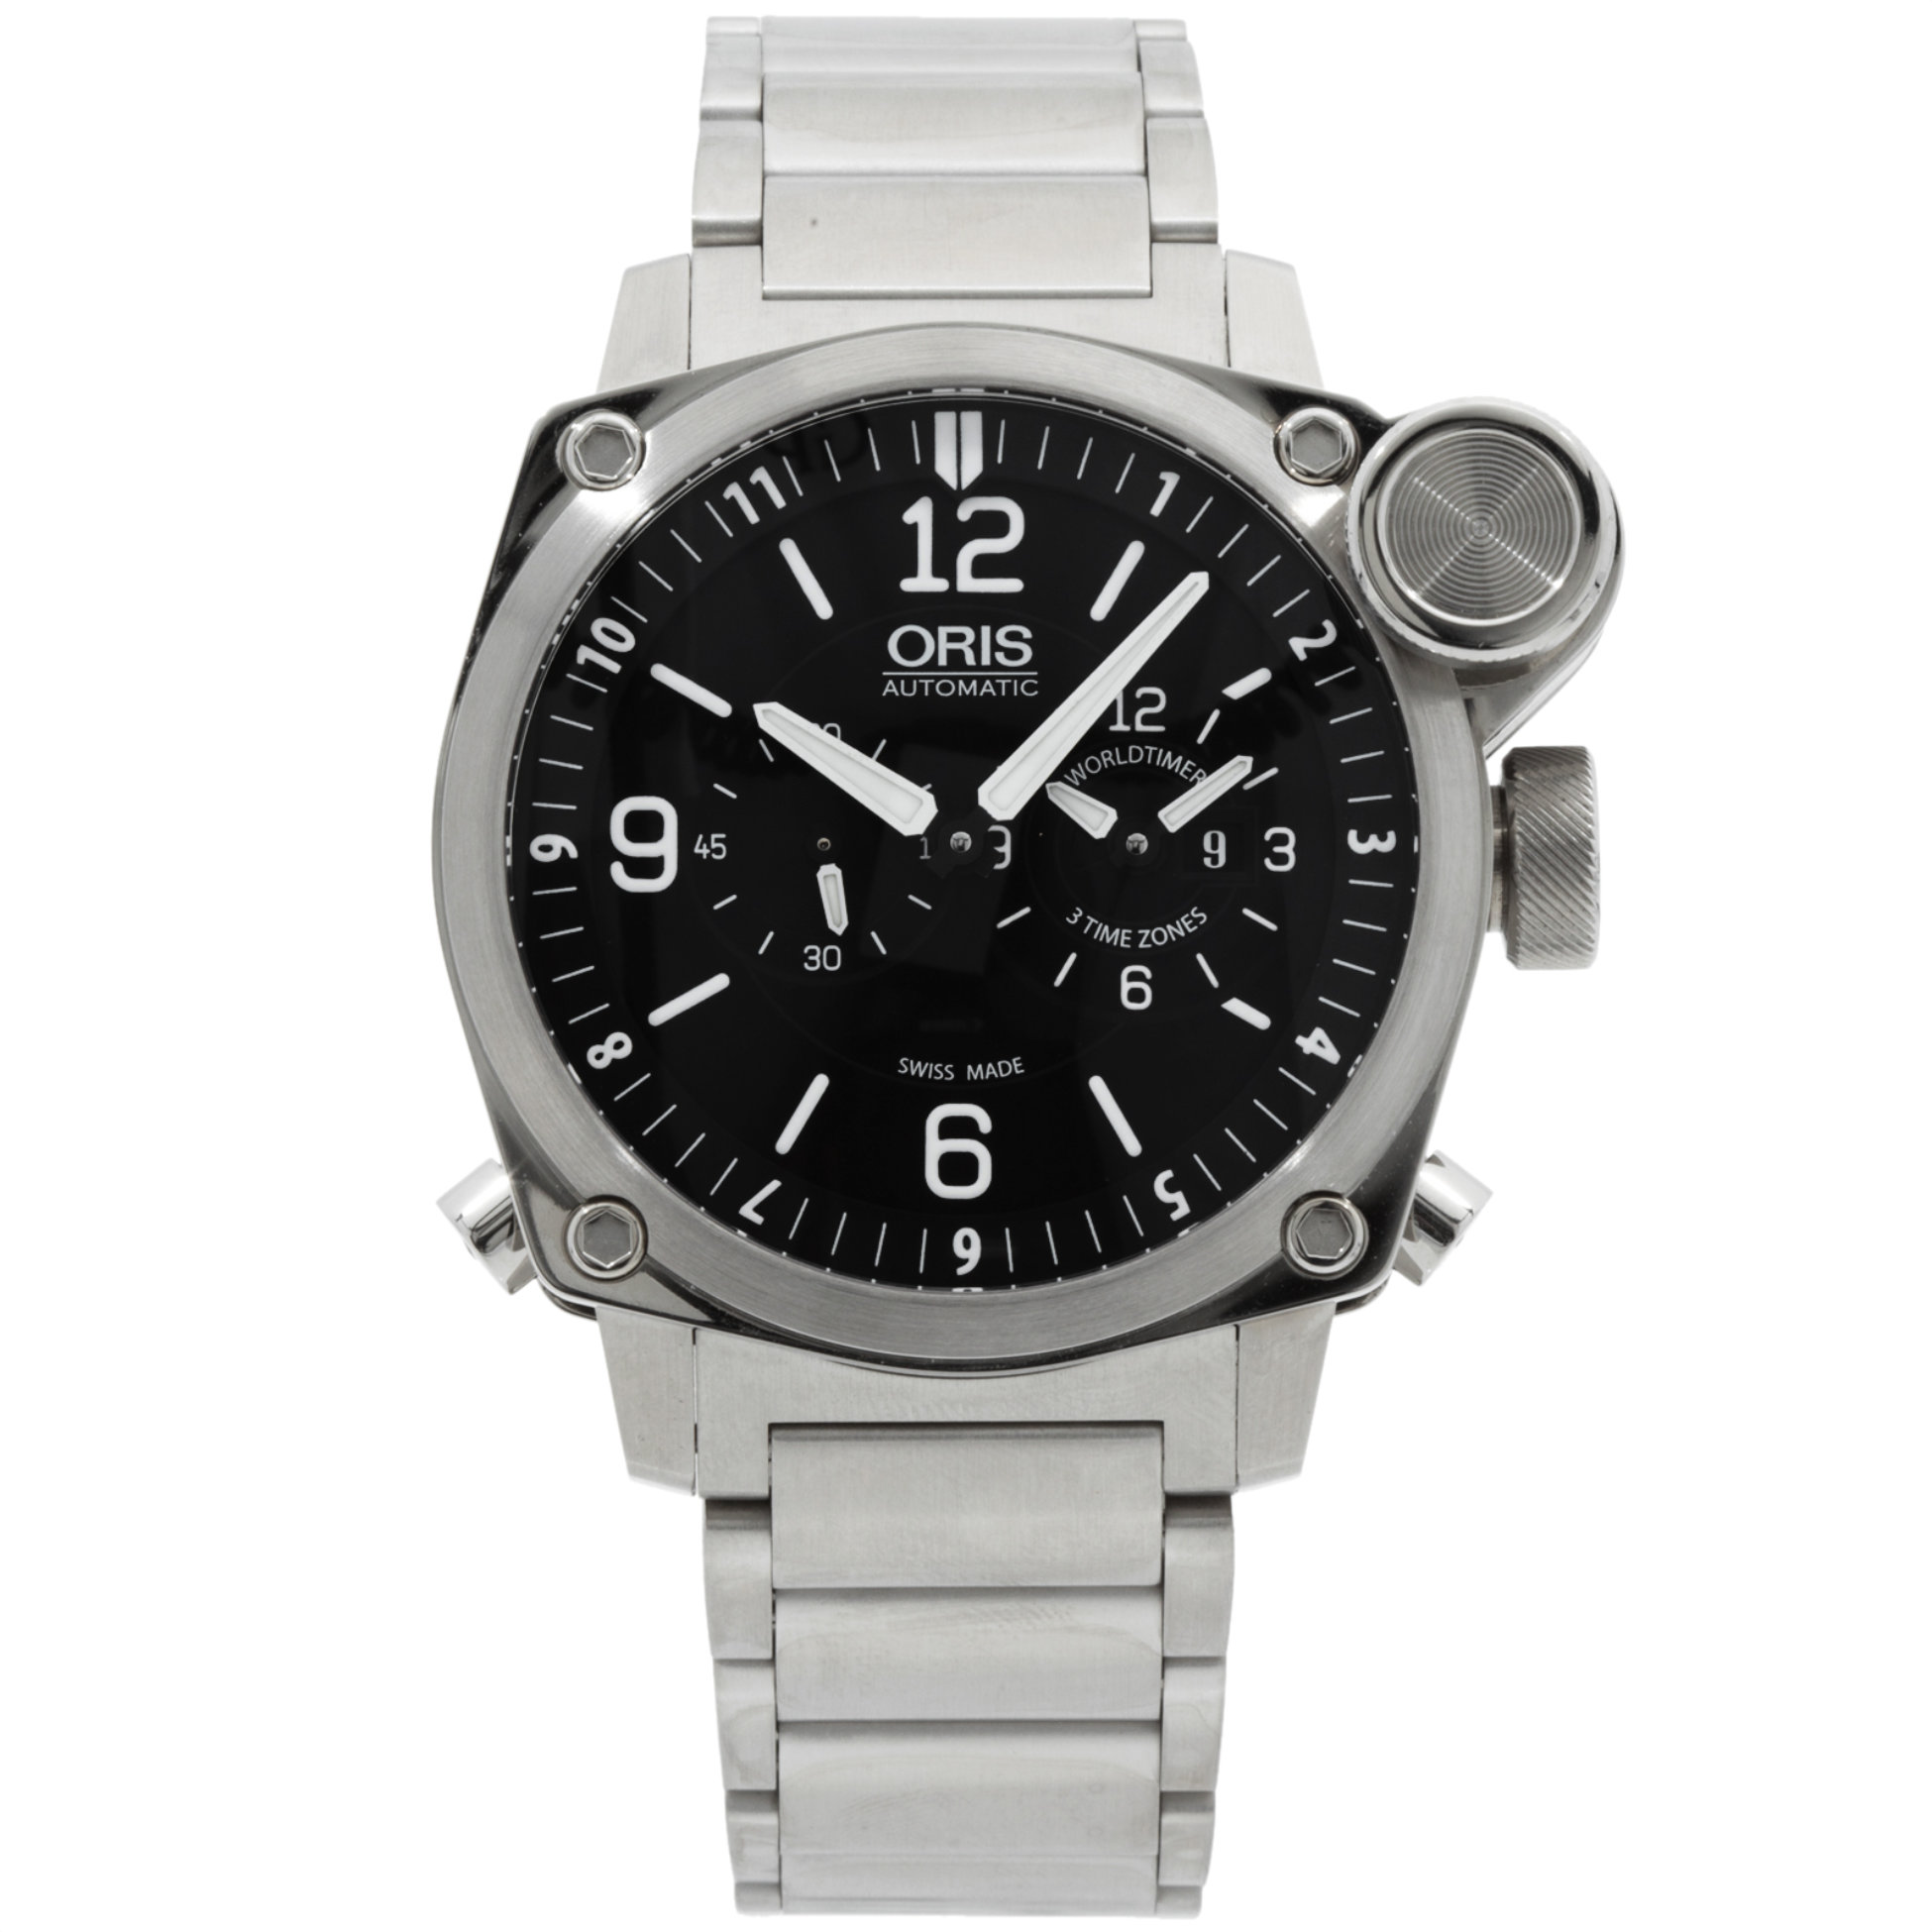 Oris BC4 Flight Timer Chronograph Watch